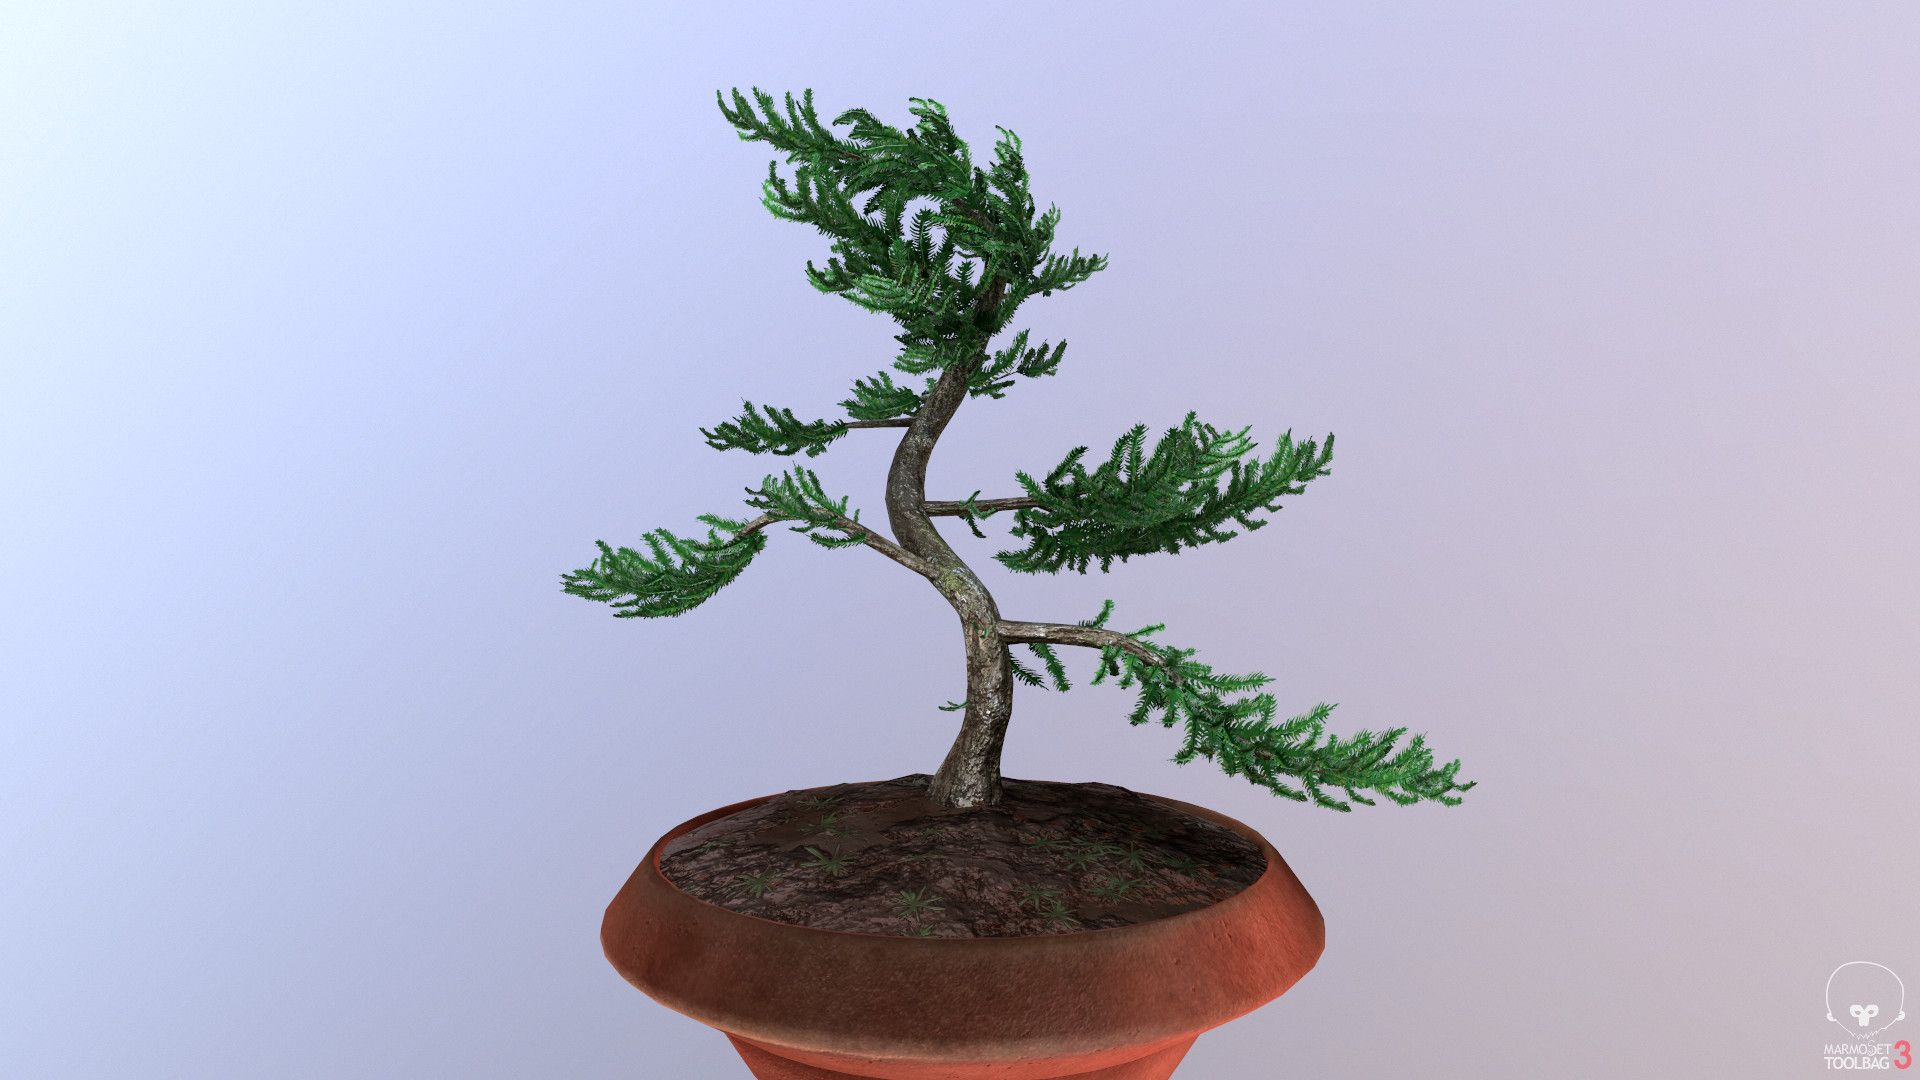 I Love Trees And Have Always Wanted To Model A Bonsai Tree